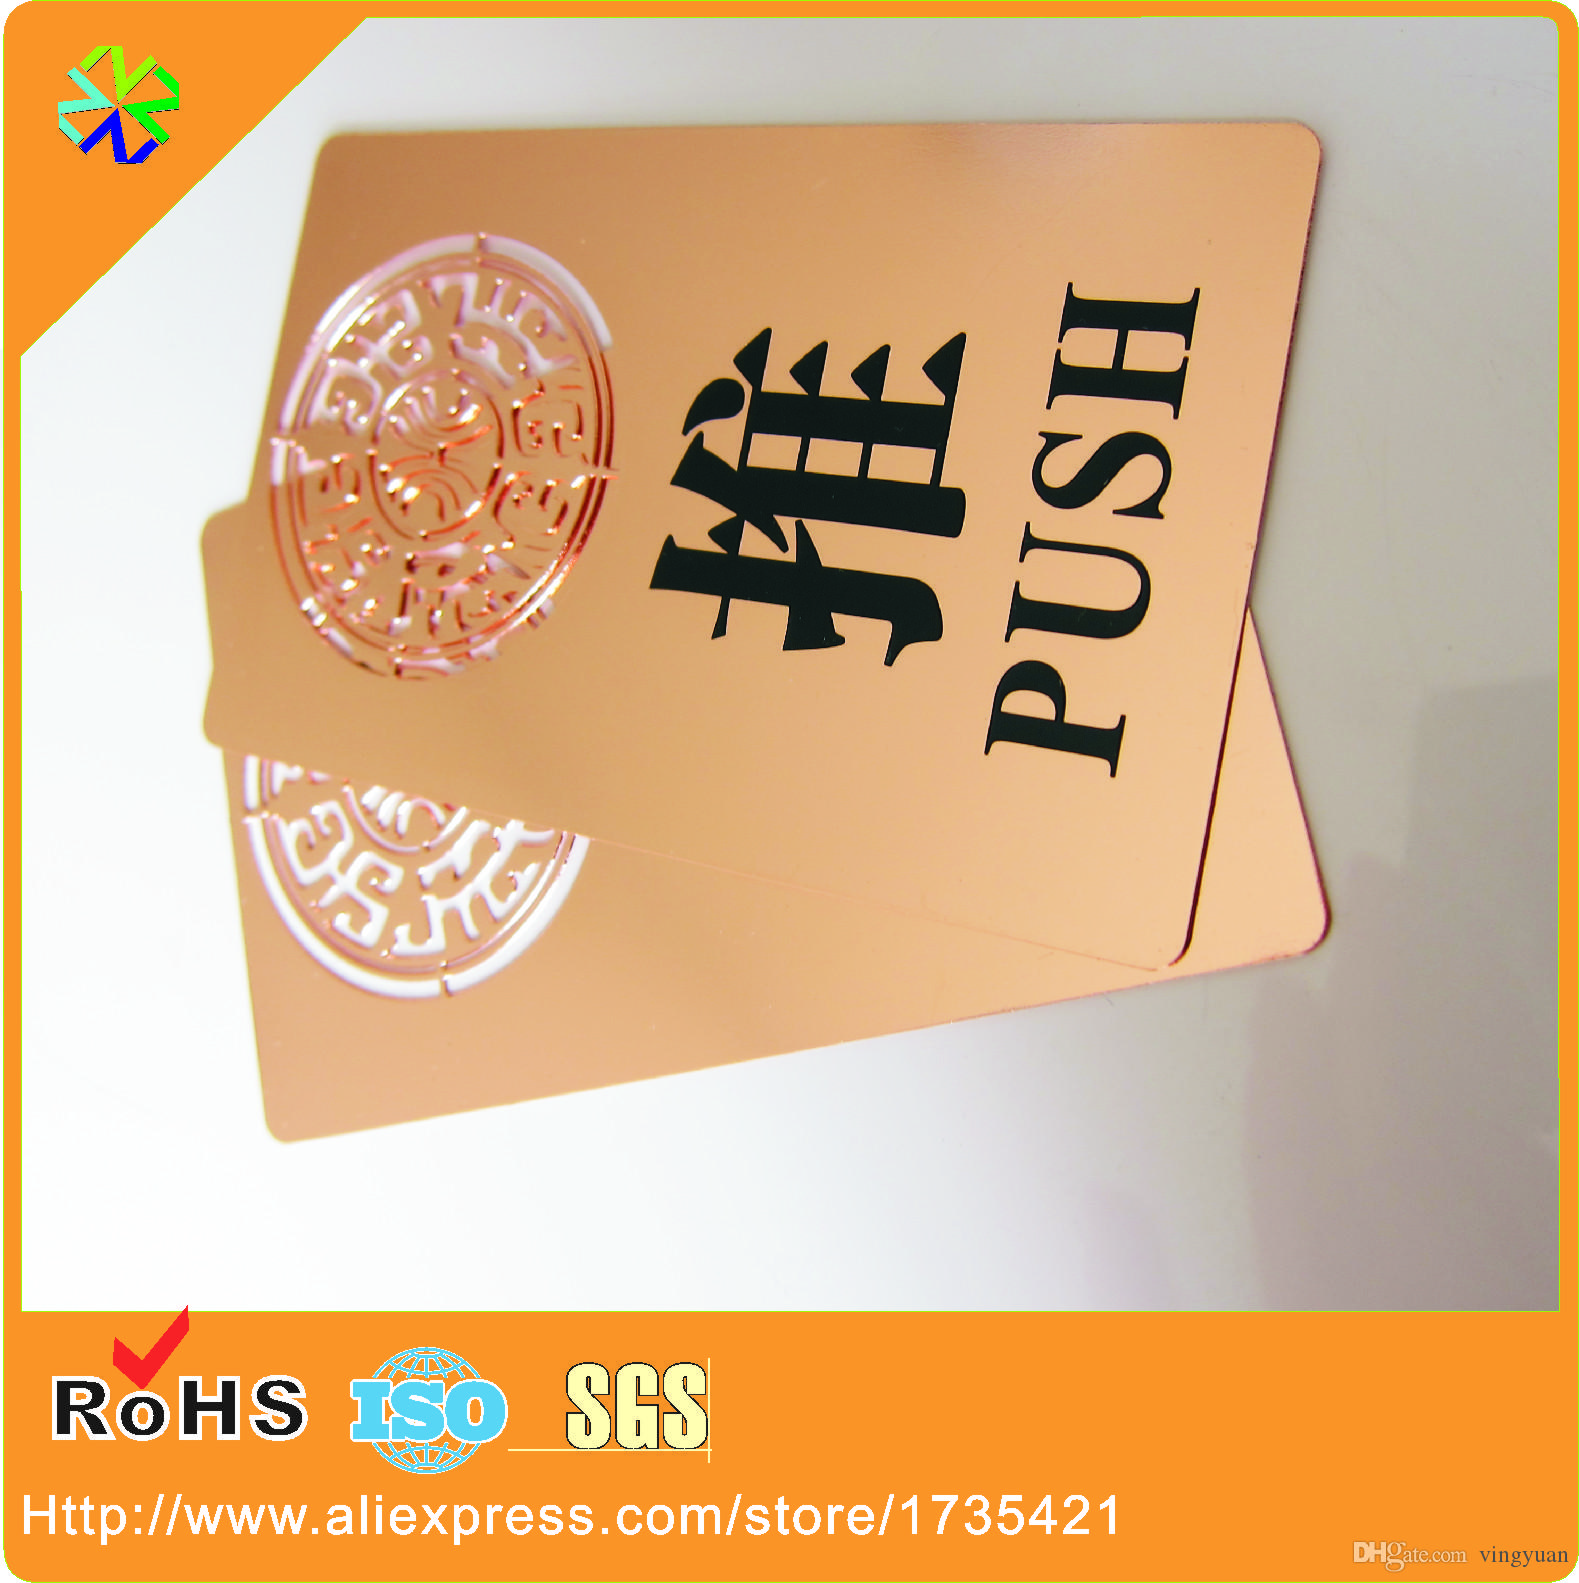 Custom made cheap rose gold metal business cards with printed logo custom made cheap rose gold metal business cards with printed logo metal card metal business card stainless steel card online with 19253piece on colourmoves